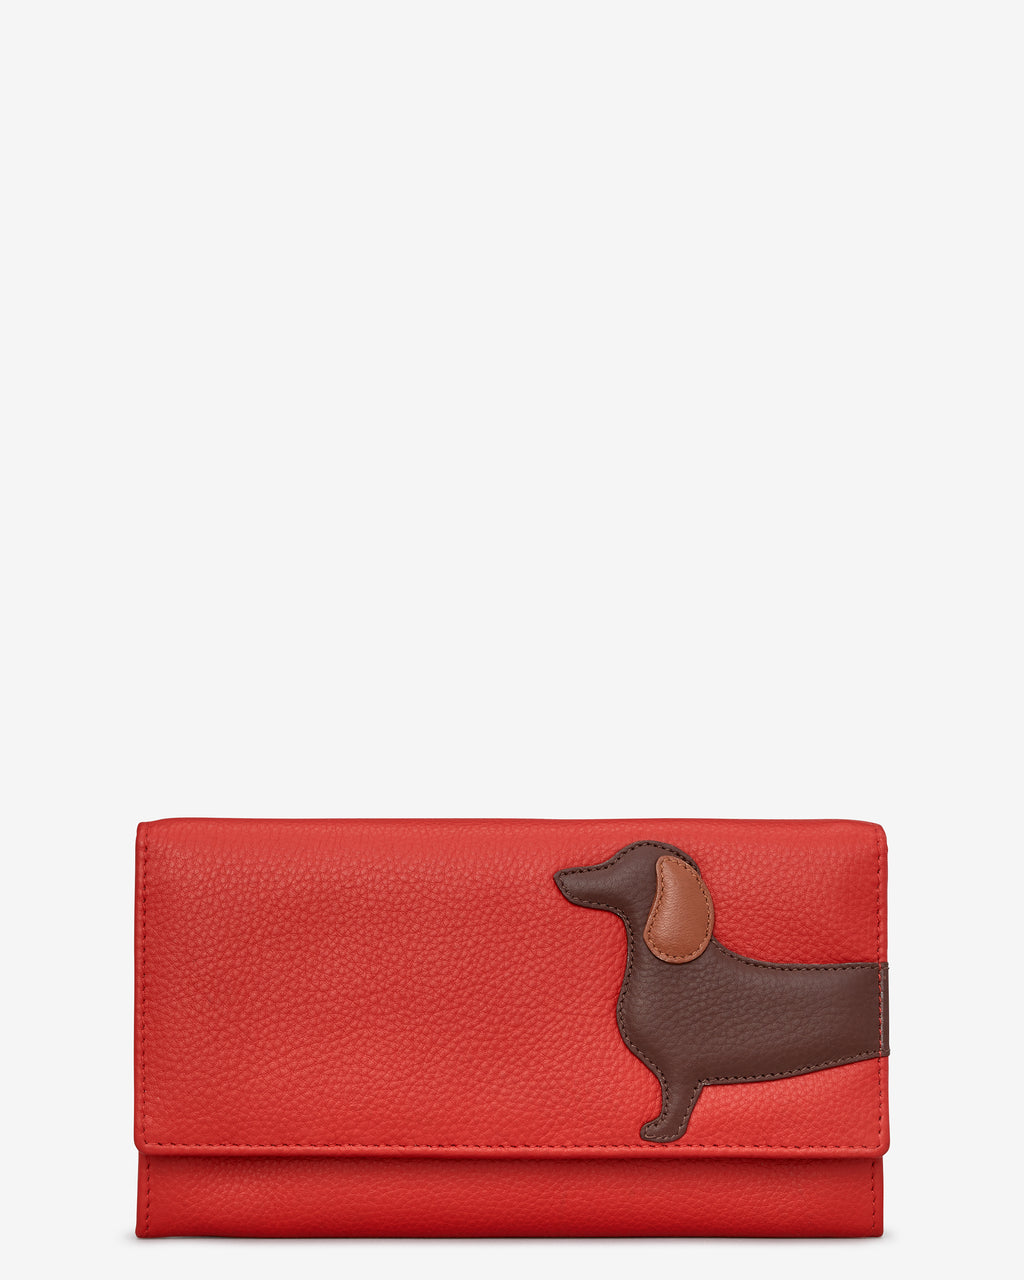 Dottie The Dachshund Flap Over Leather Matinee Purse